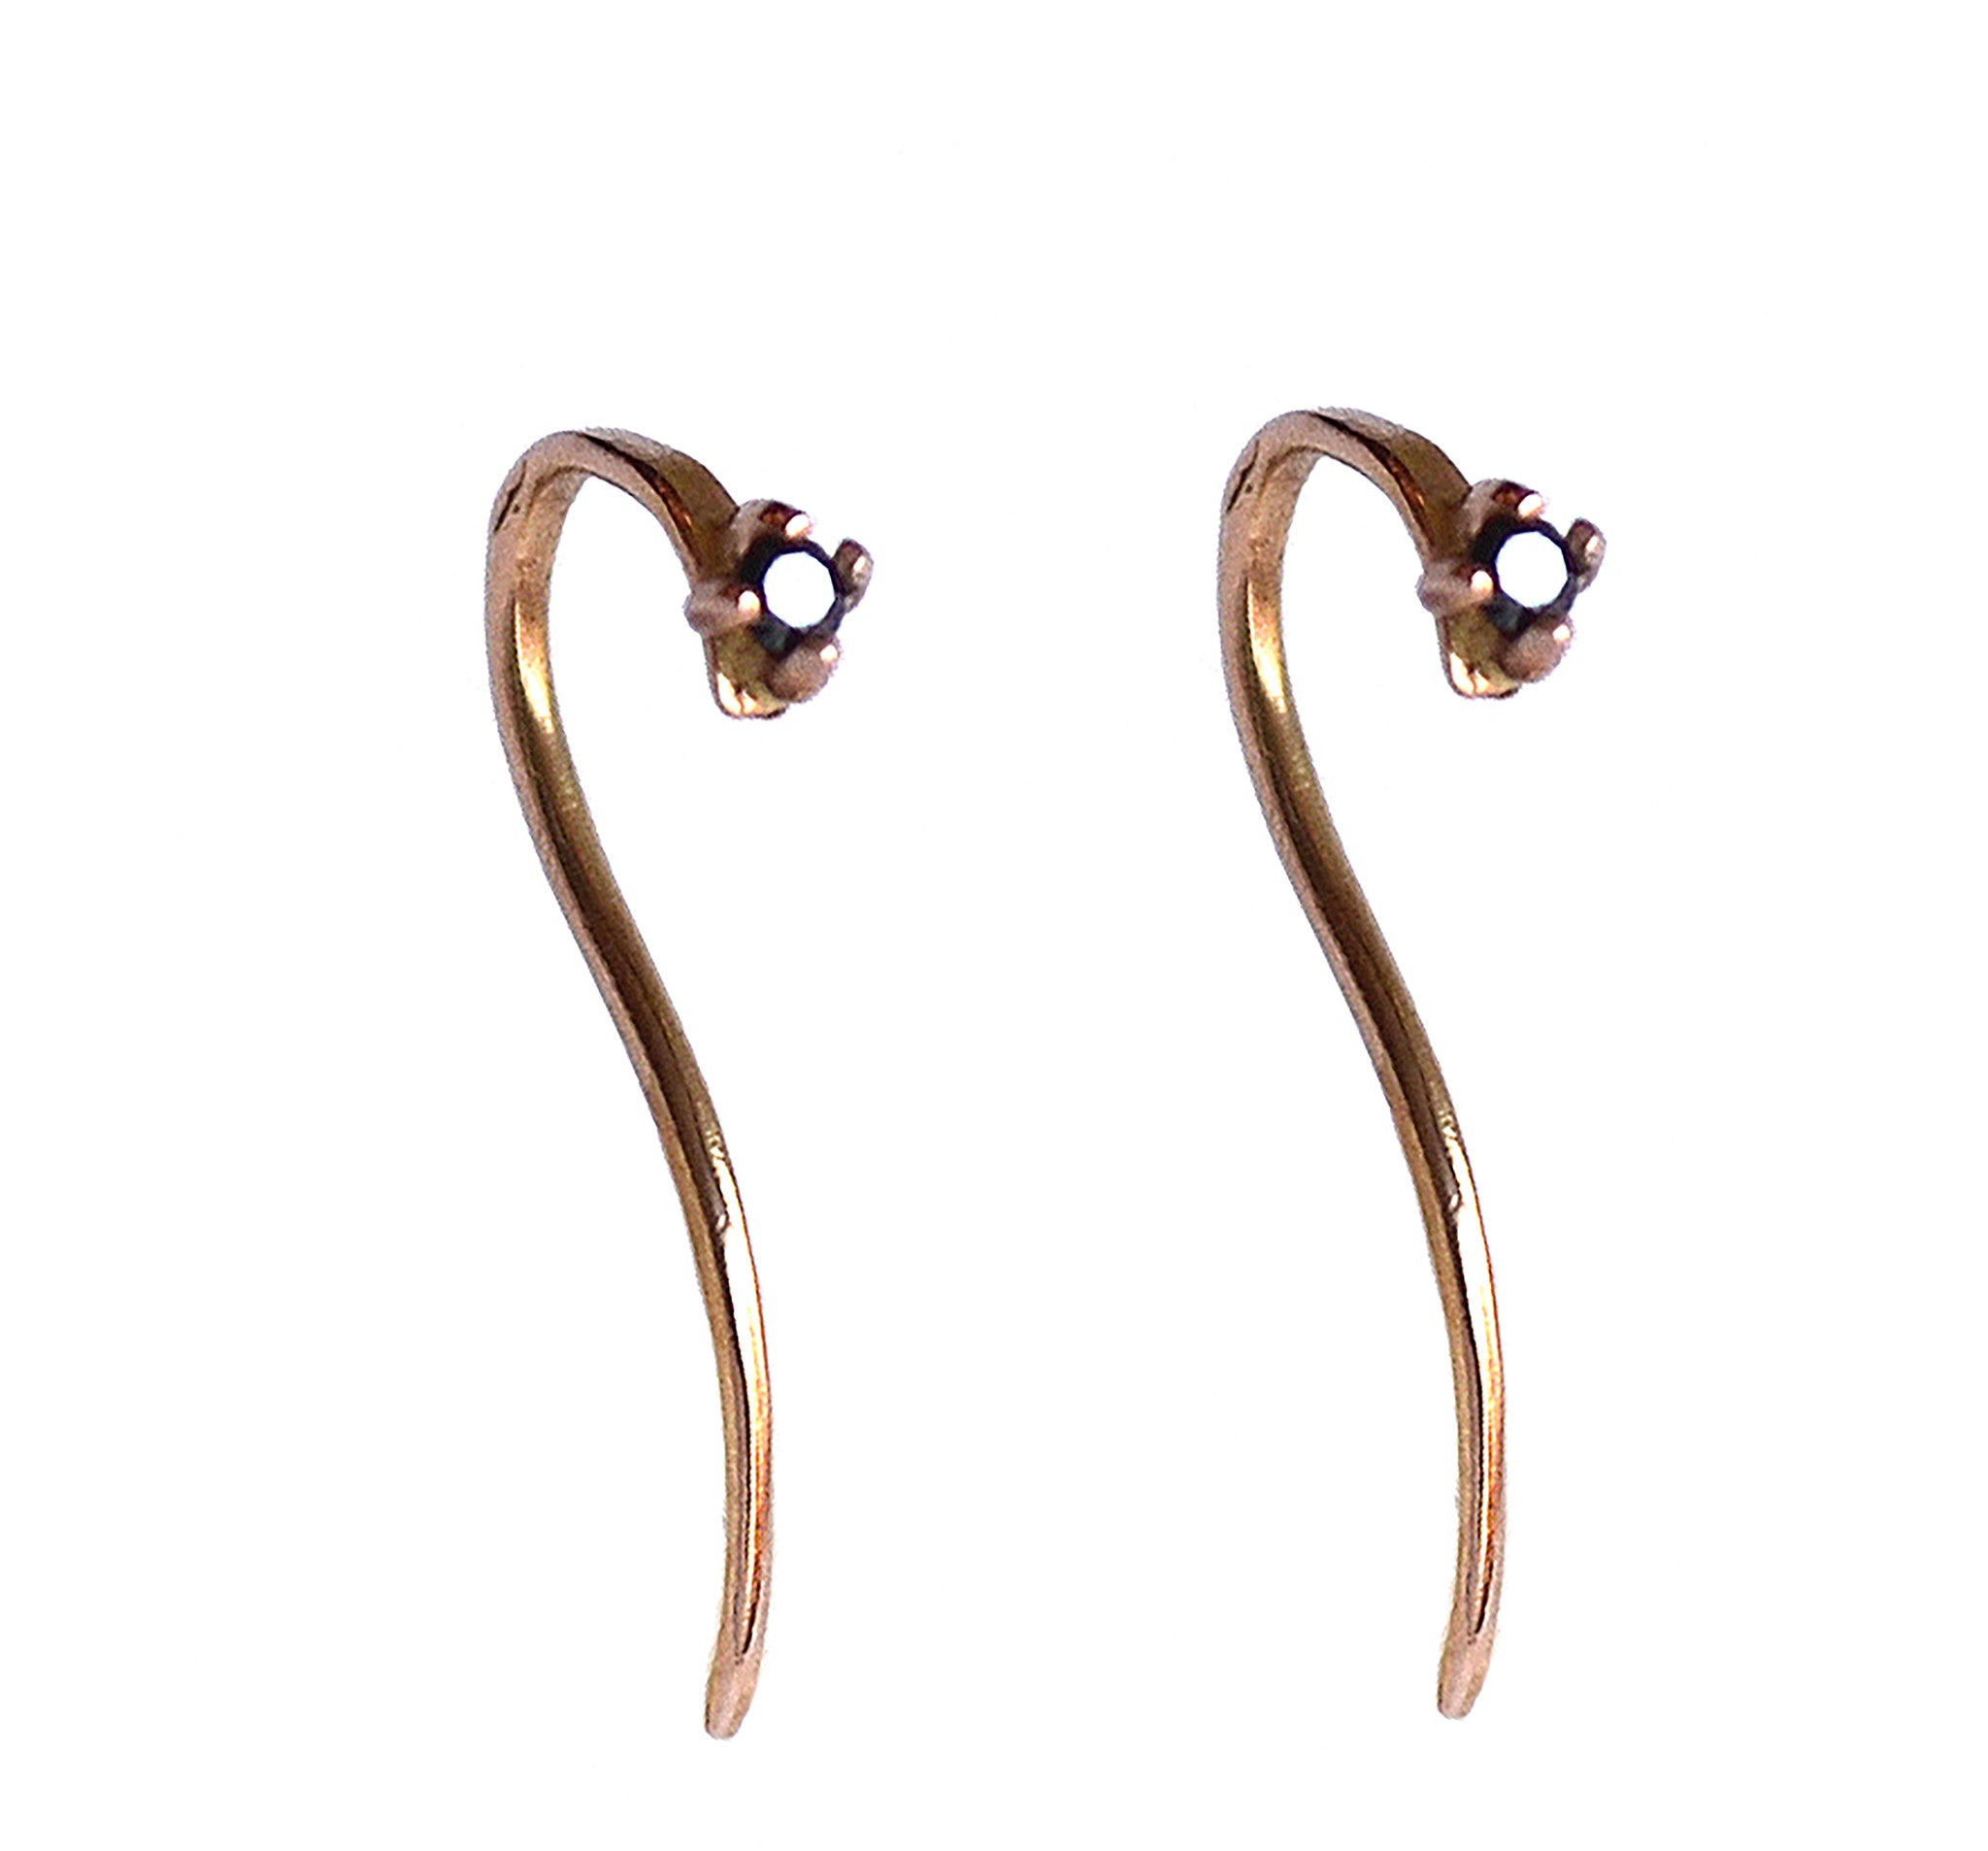 2mm black diamond hook earrings wendy nichol